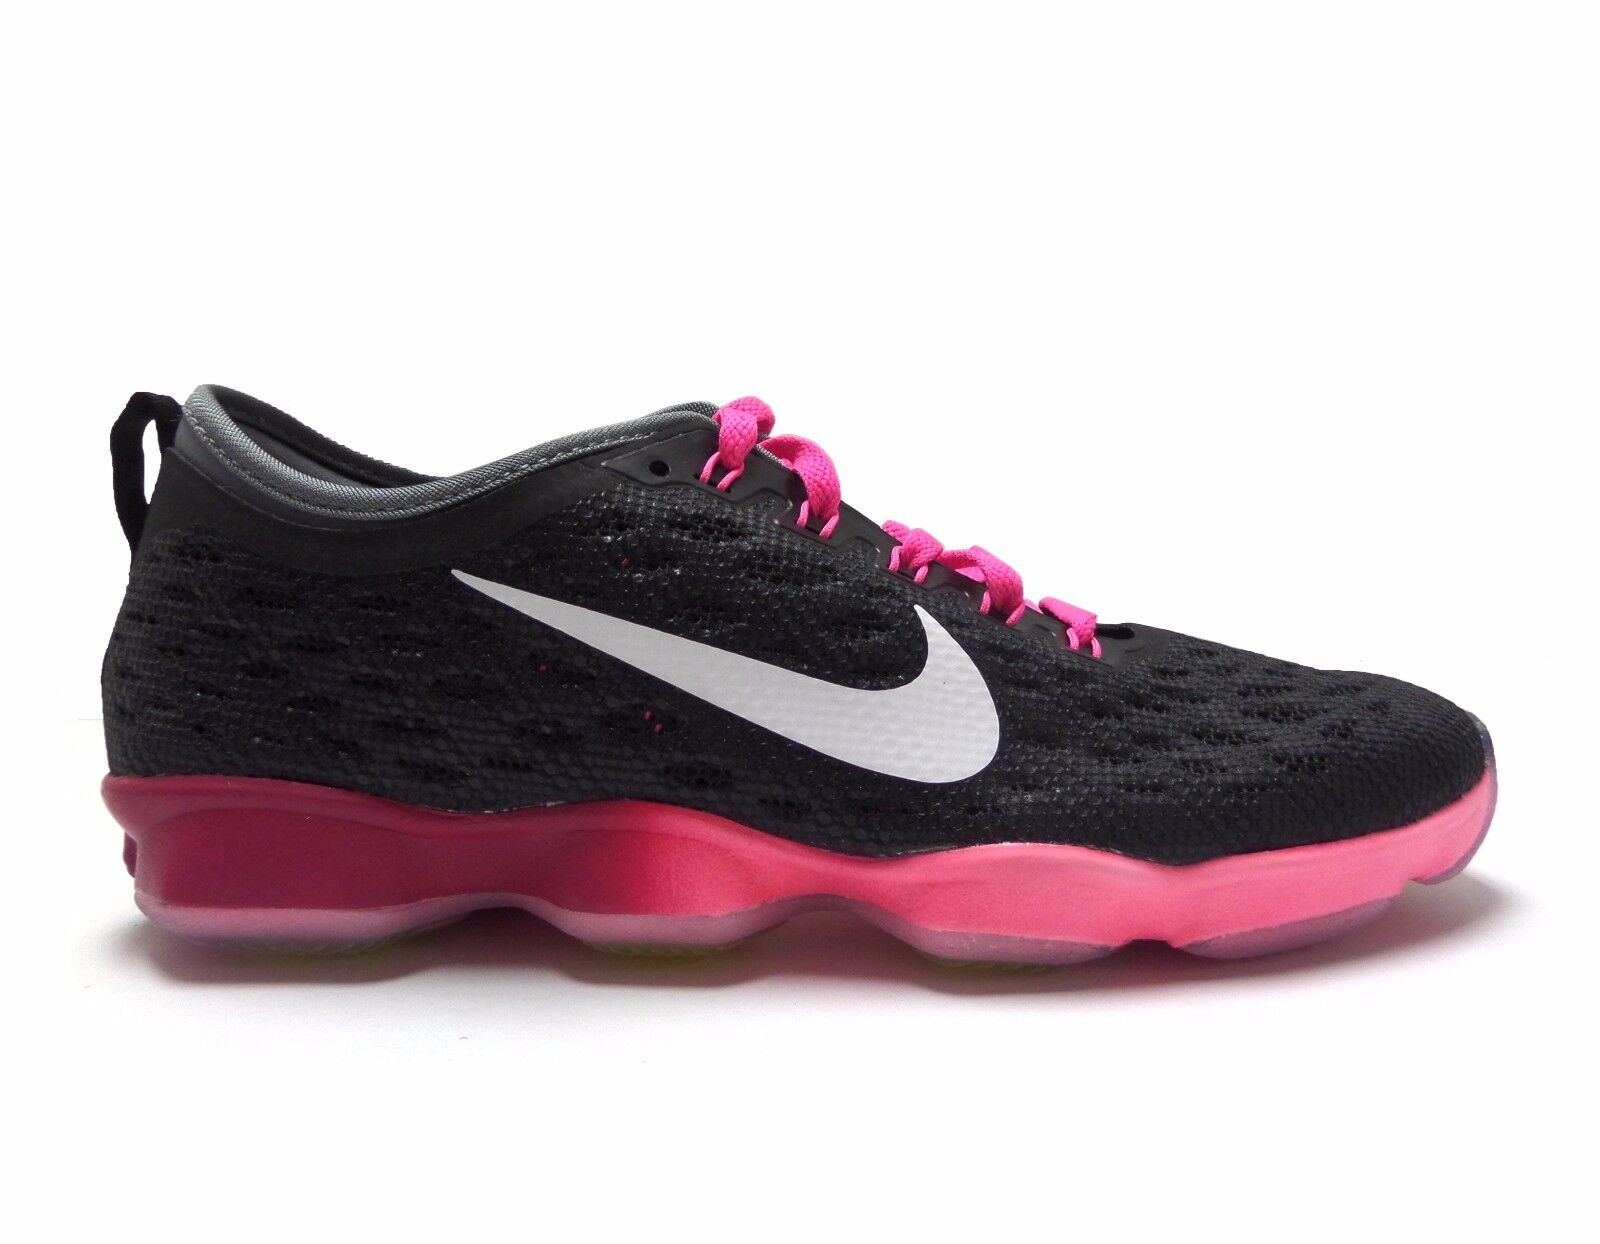 Nike Training Women's ZOOM FIT AGILITY Training Nike Shoes Black/Pink Pow 684984-006 a1 39c963